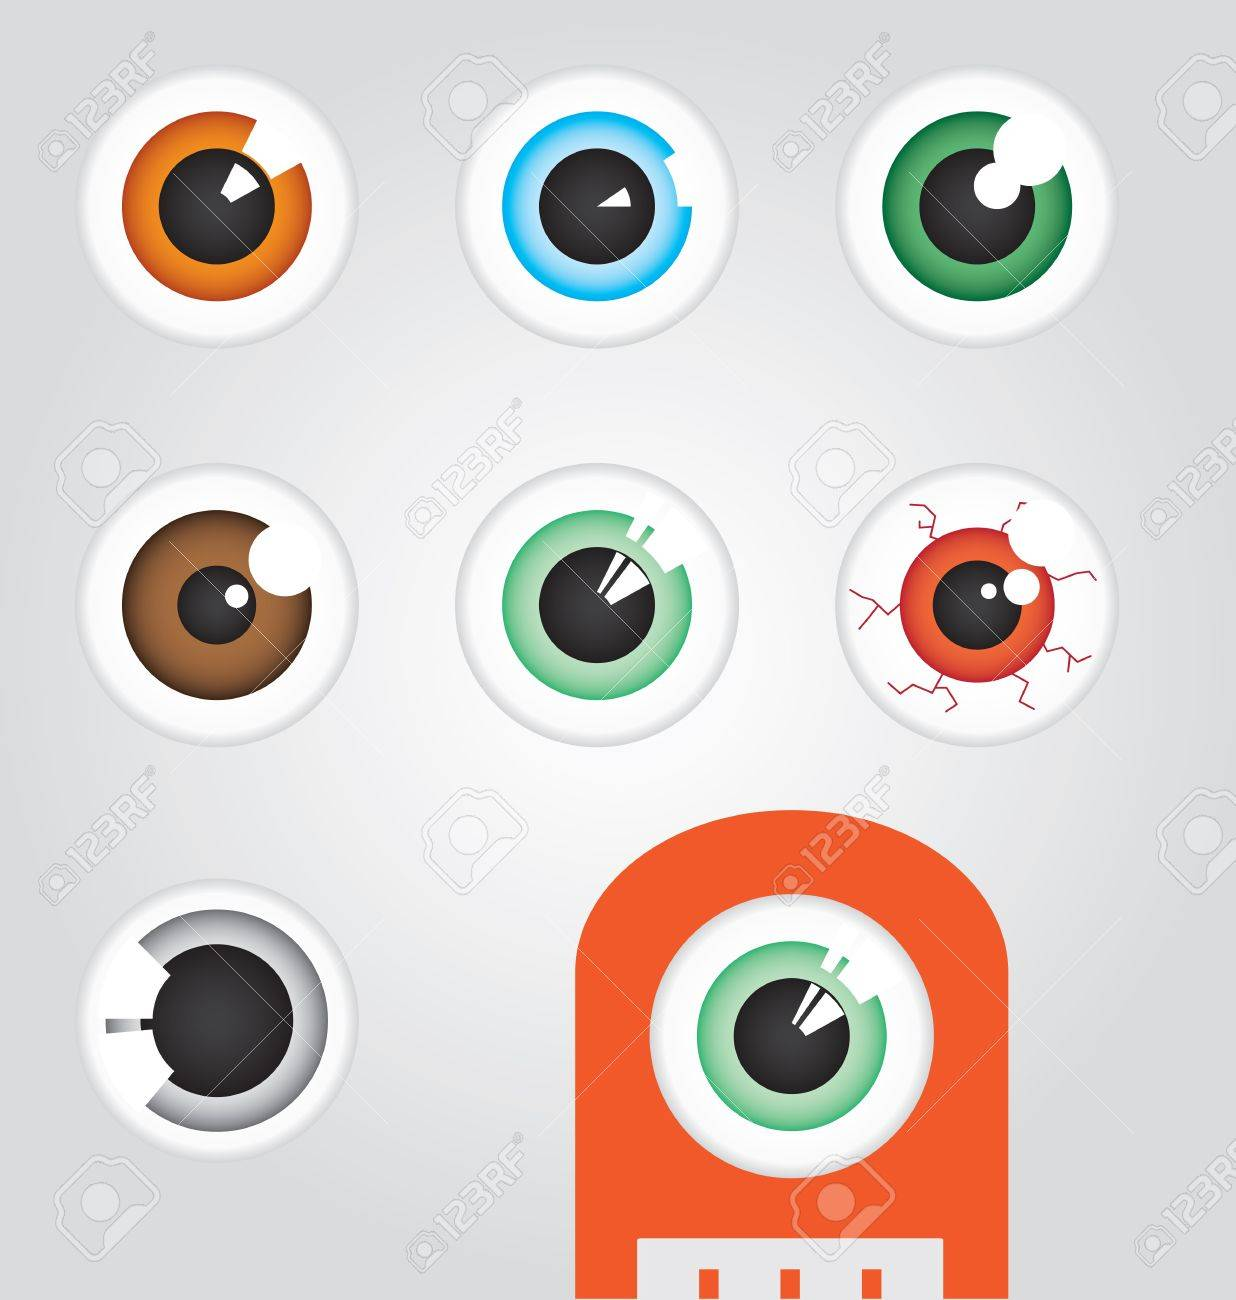 Eyeballs Stock Vector - 13235447